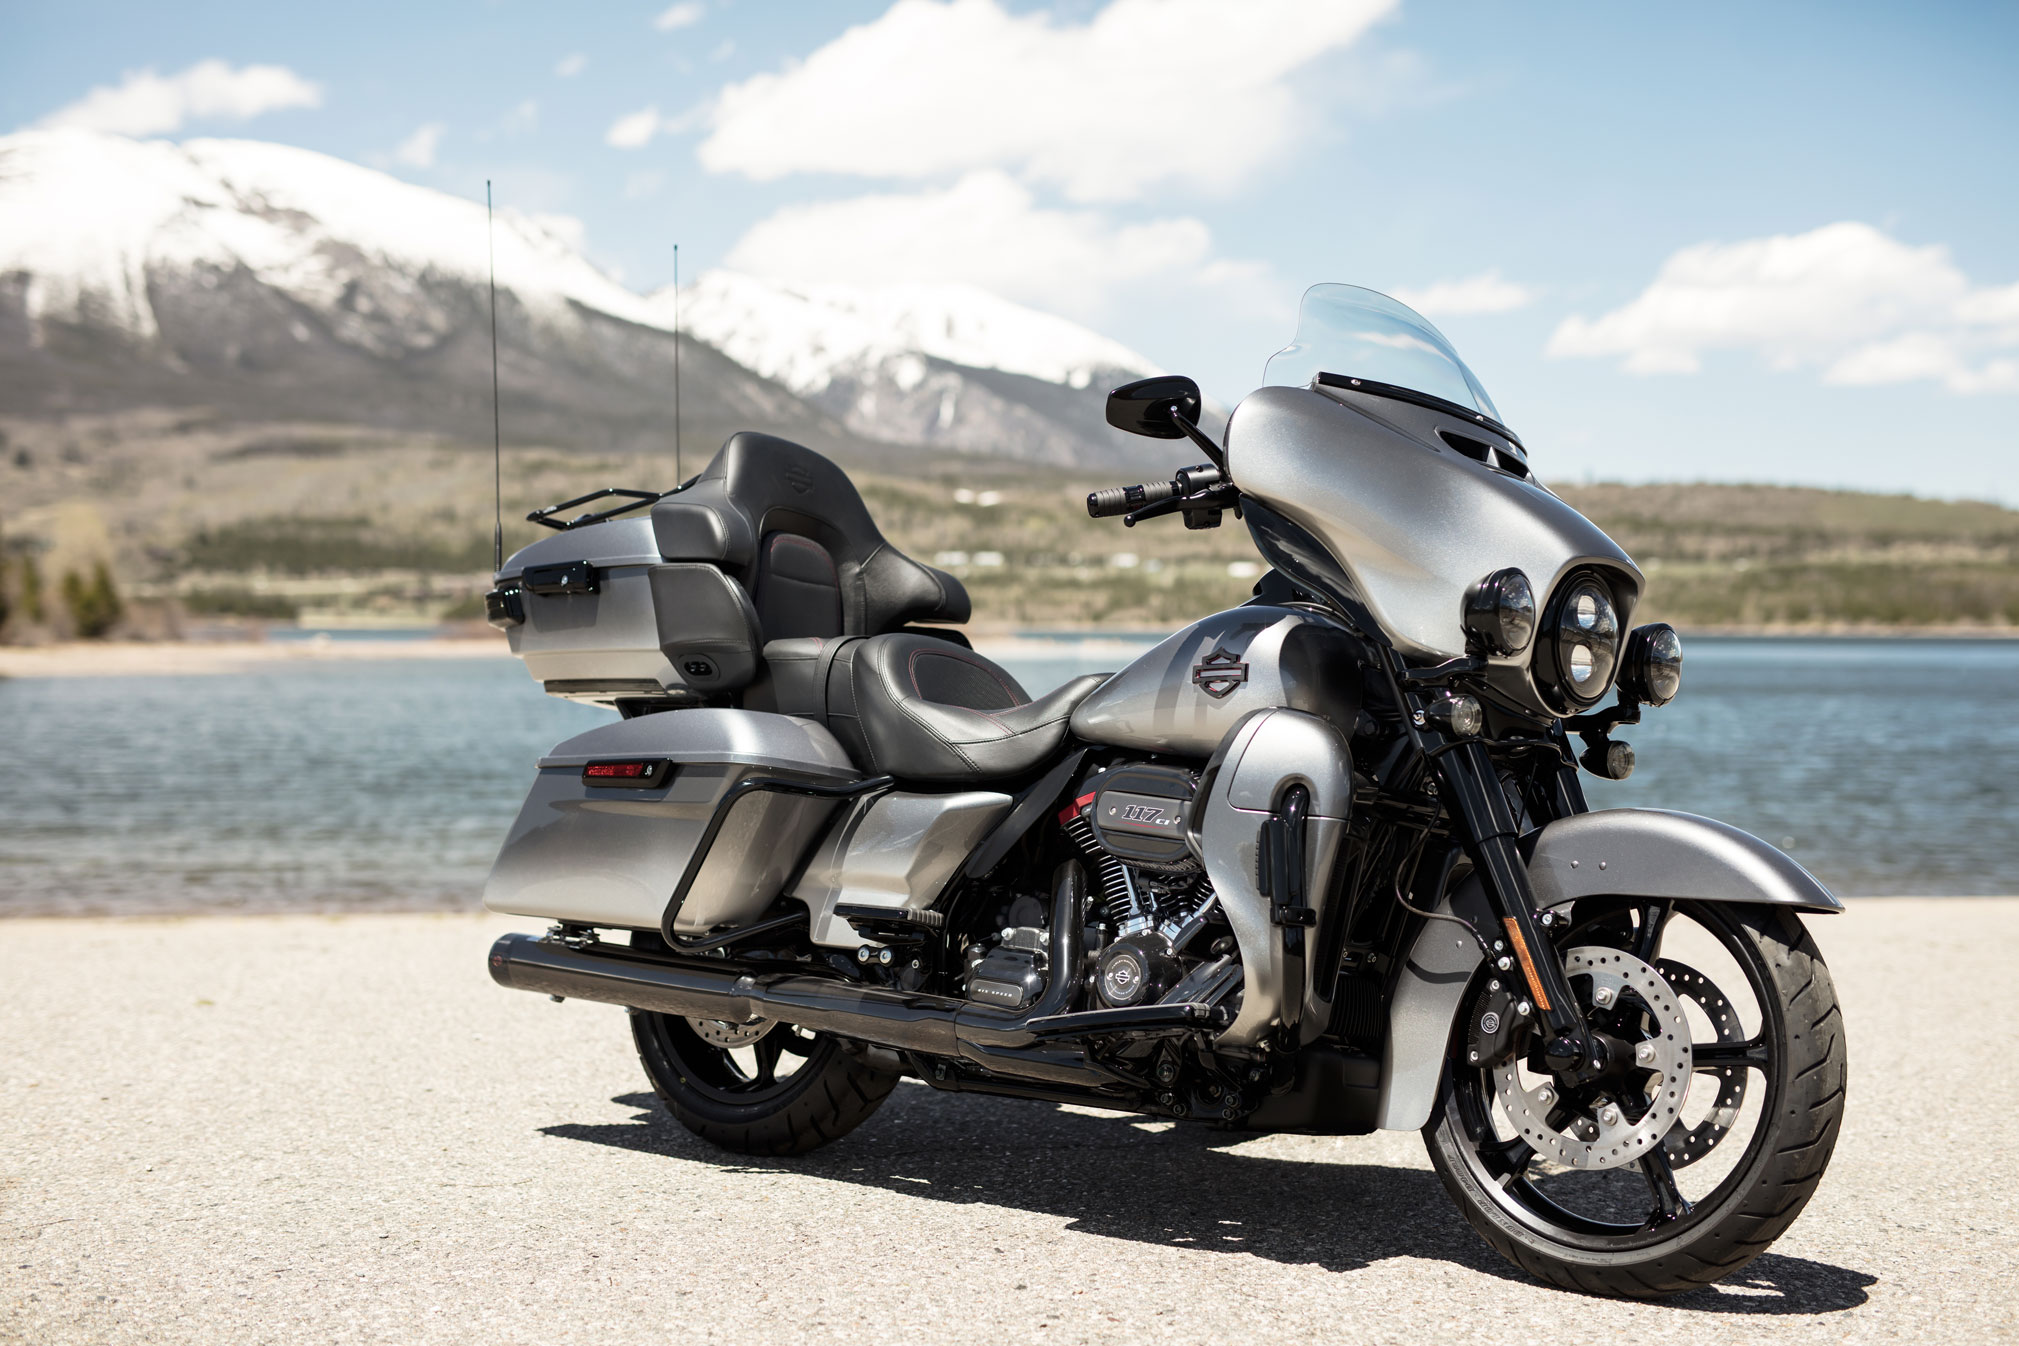 2019 Harley Davidson Fxdr 114 Guide � Total Motorcycle: 2019 Harley-Davidson CVO Limited Guide • Total Motorcycle